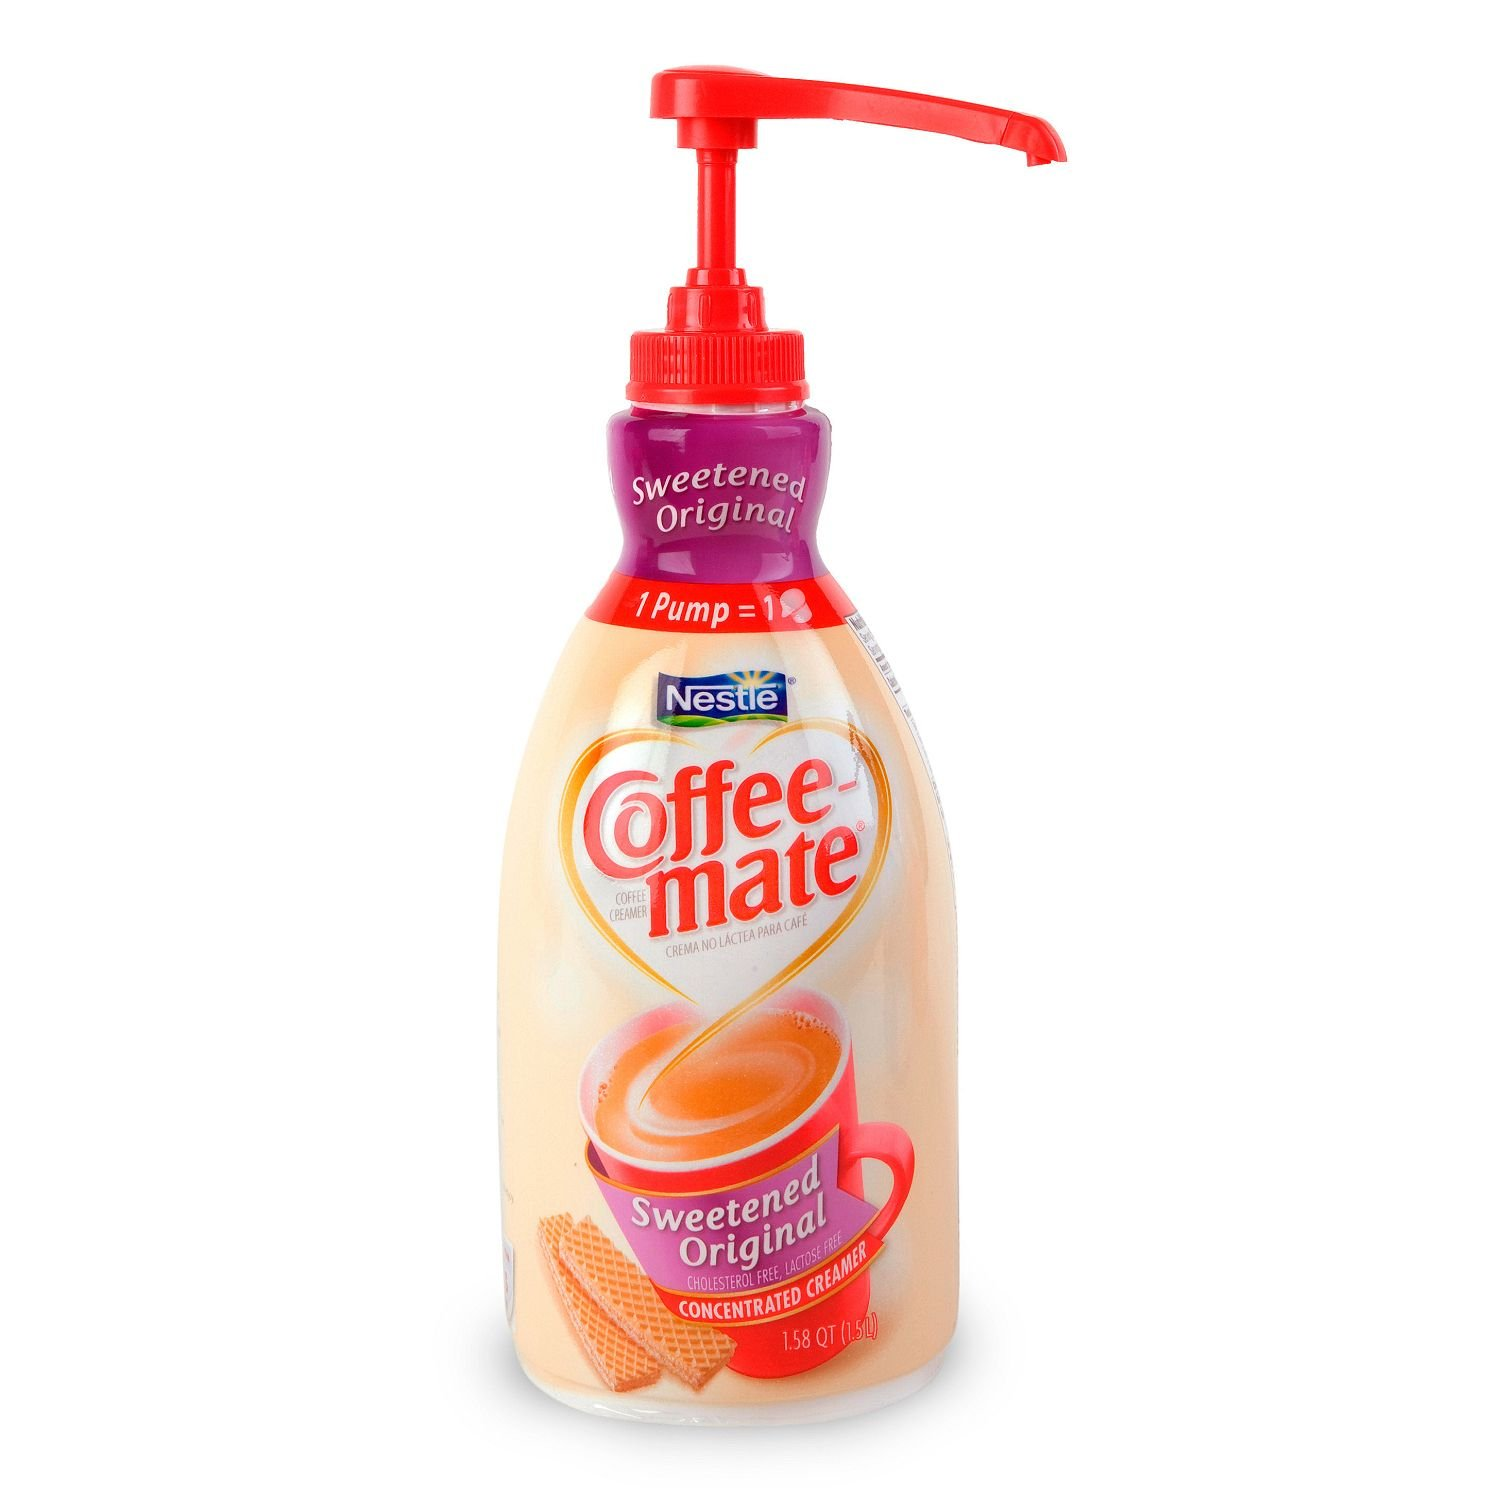 Nestle Coffee-mate Coffee Creamer, Sweetened Original, (1.58 qt.) - 2 PACKS